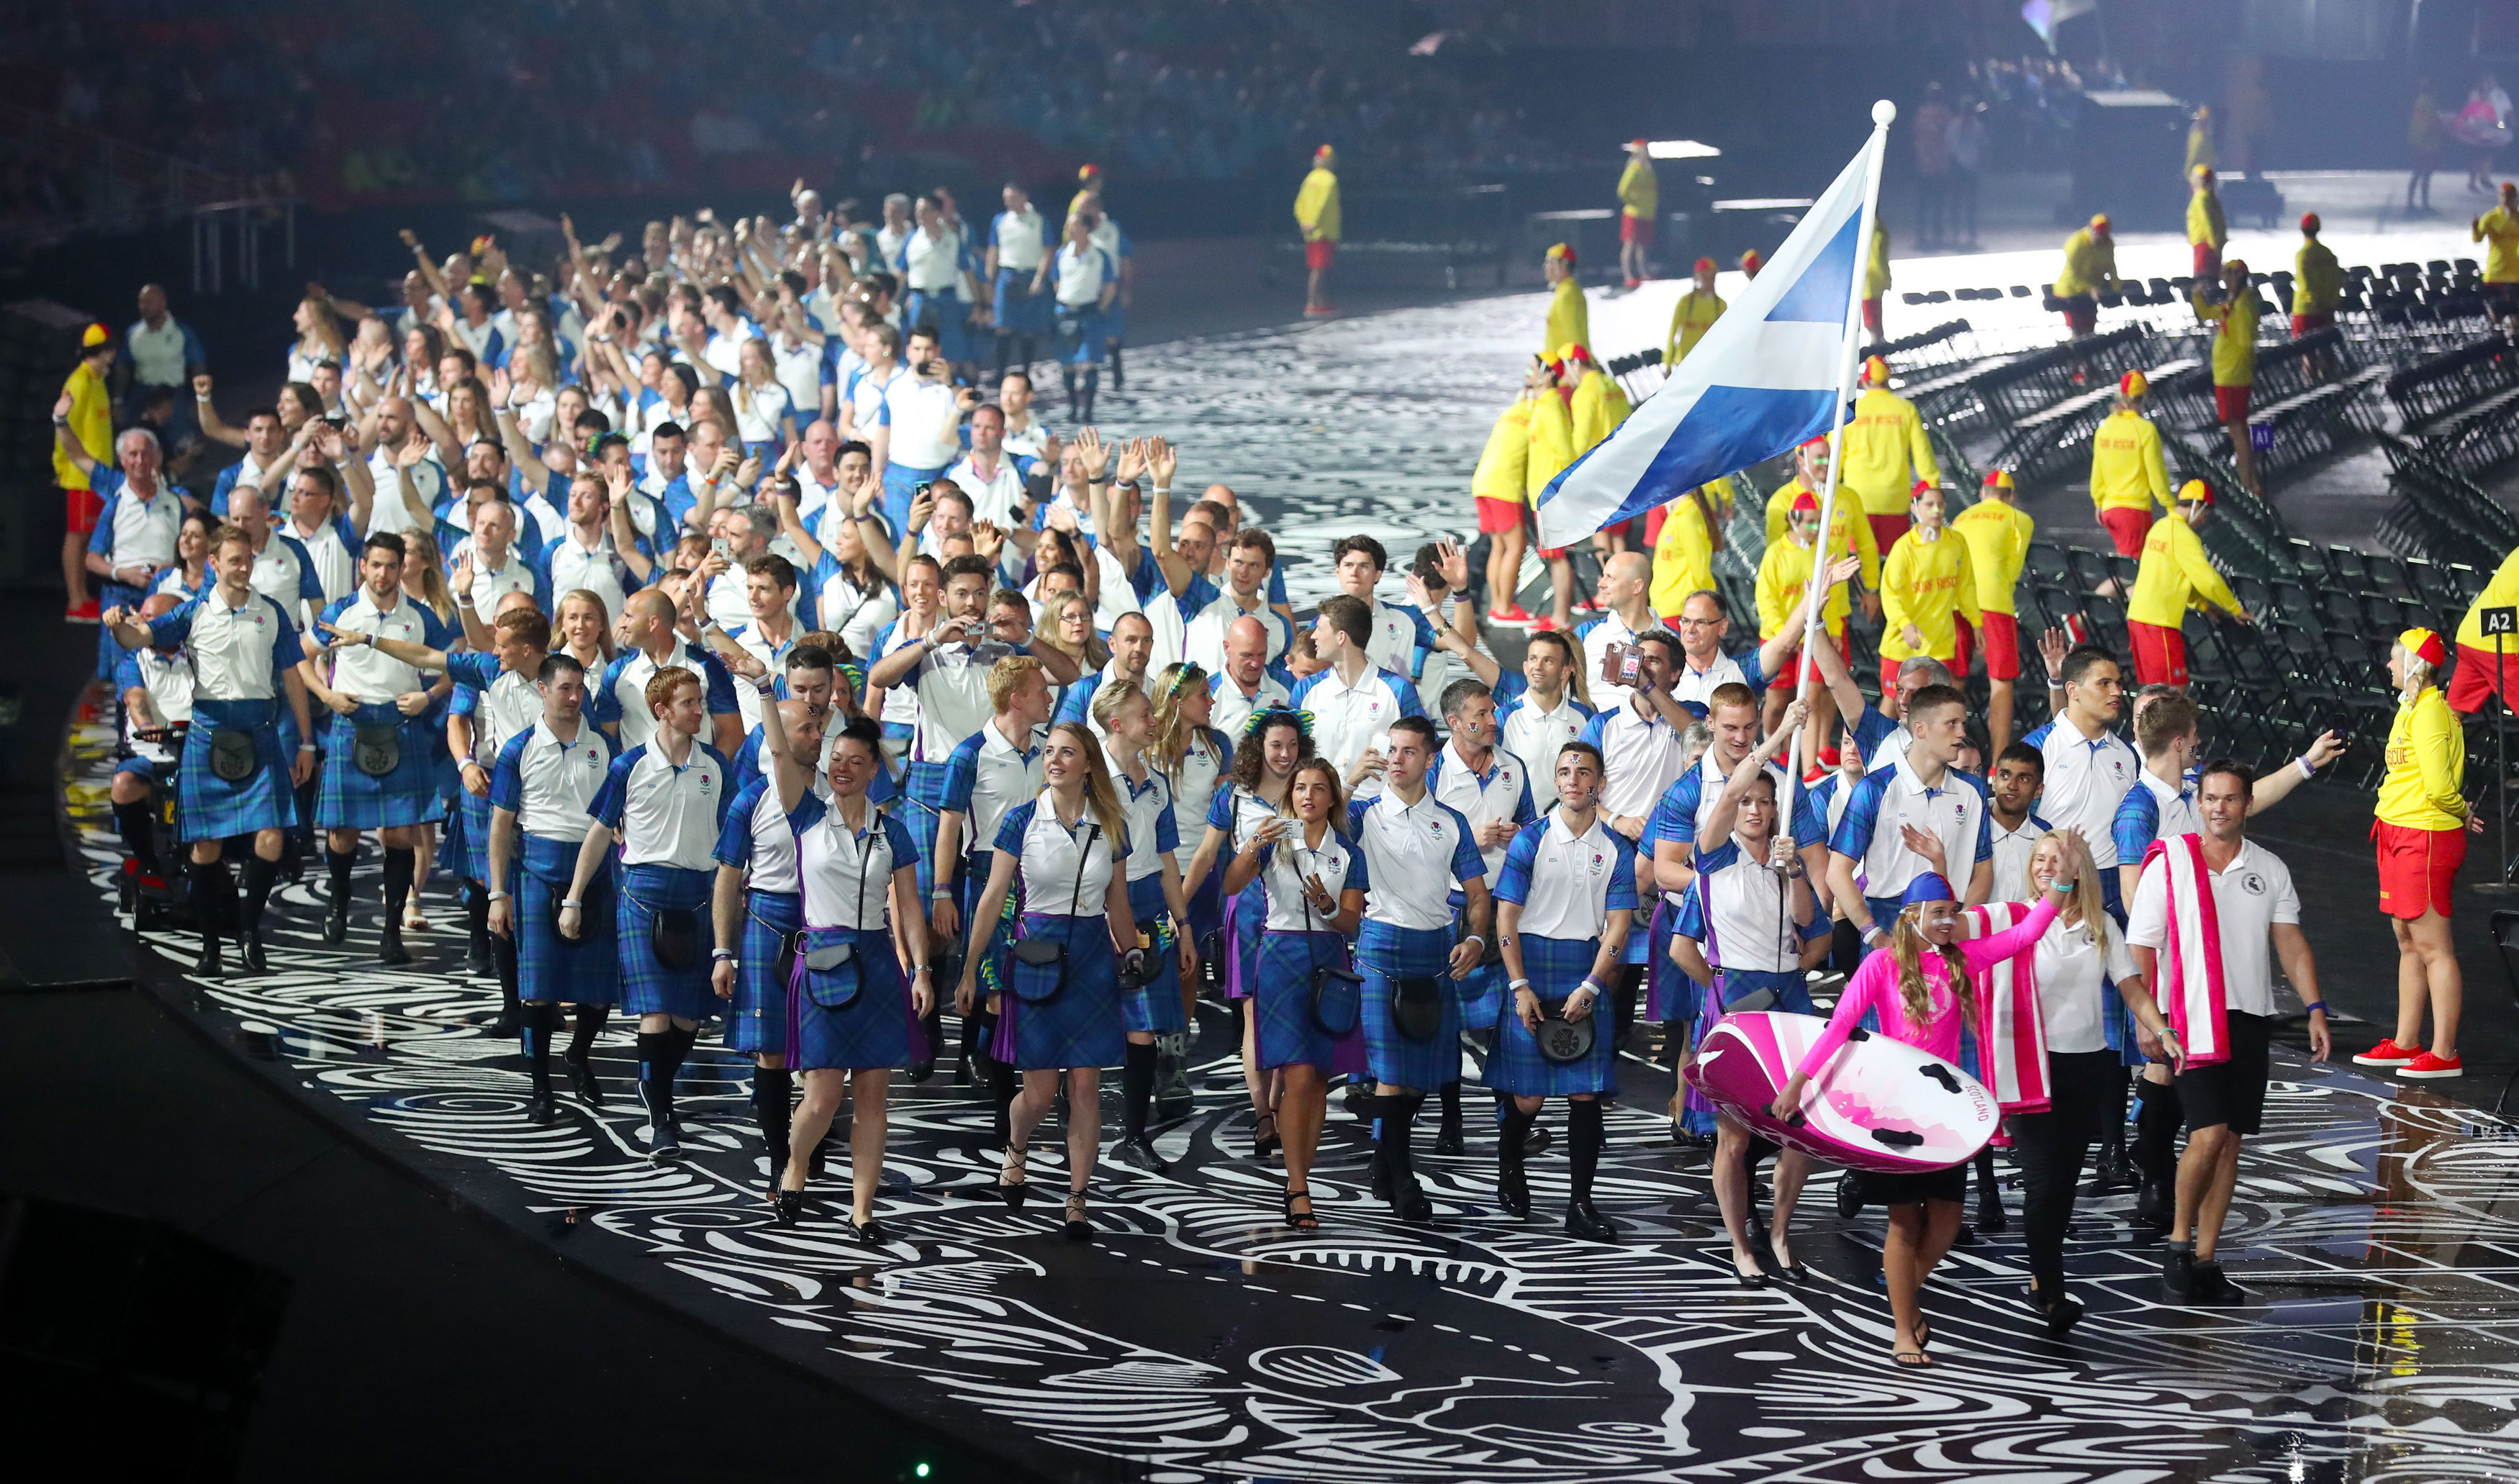 Which sports will no longer have a chance to be part of Team Scotland?